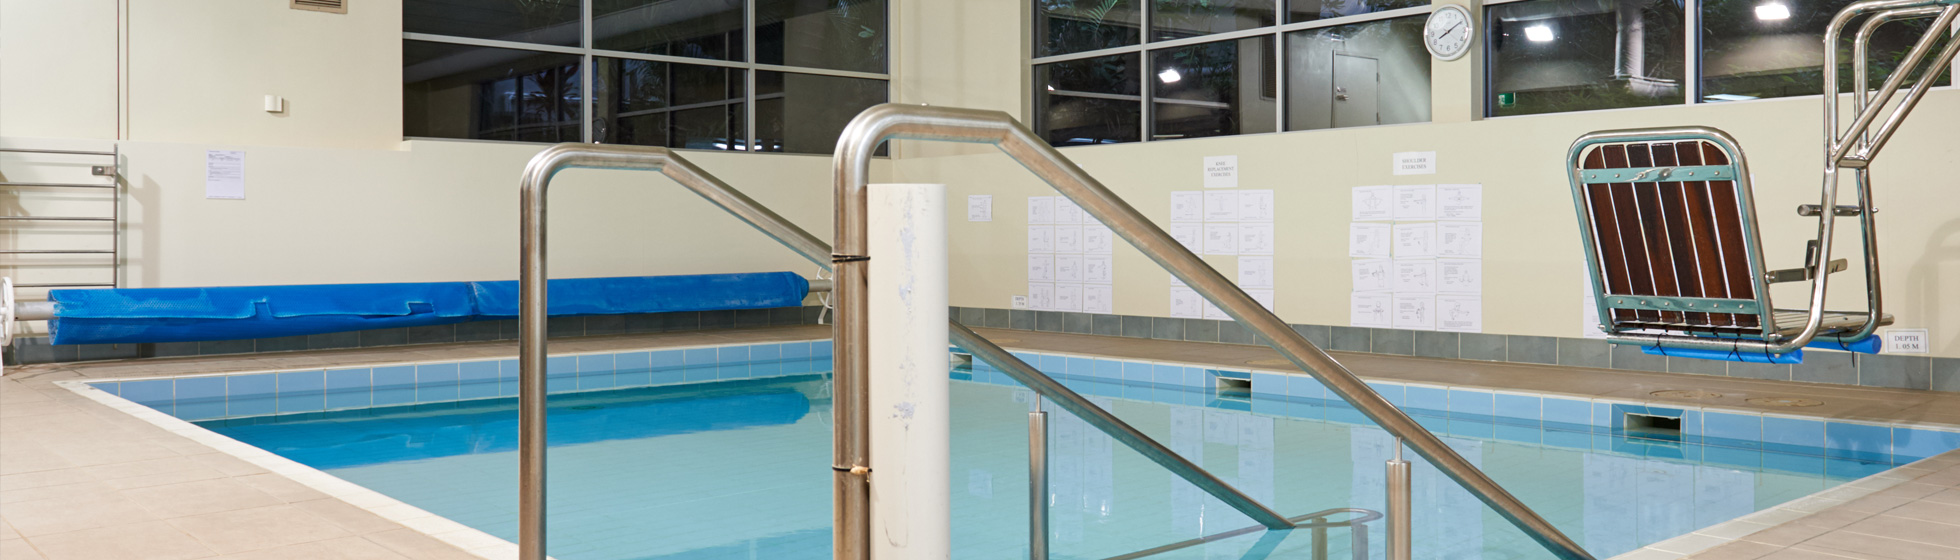 Hydrotherapy rehabilitation pool